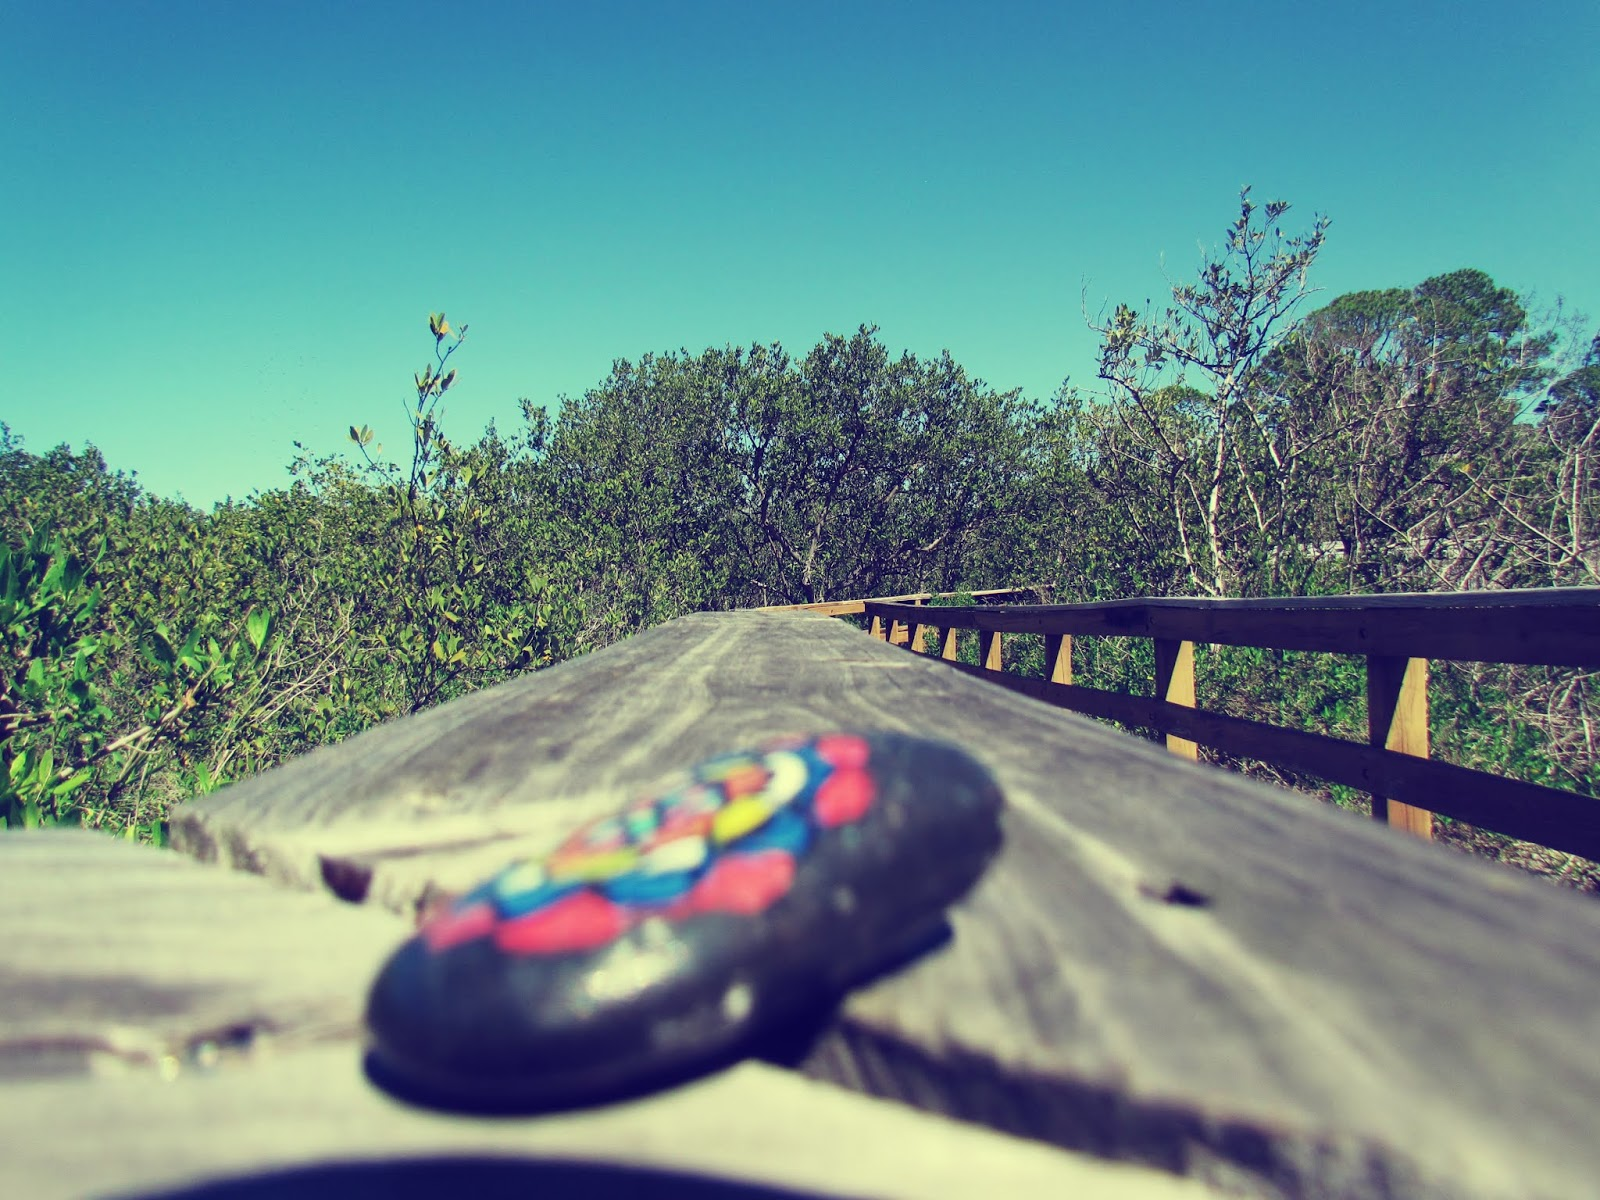 Florida Wildlife + Black Painted River Rock on a Bridge in Nature